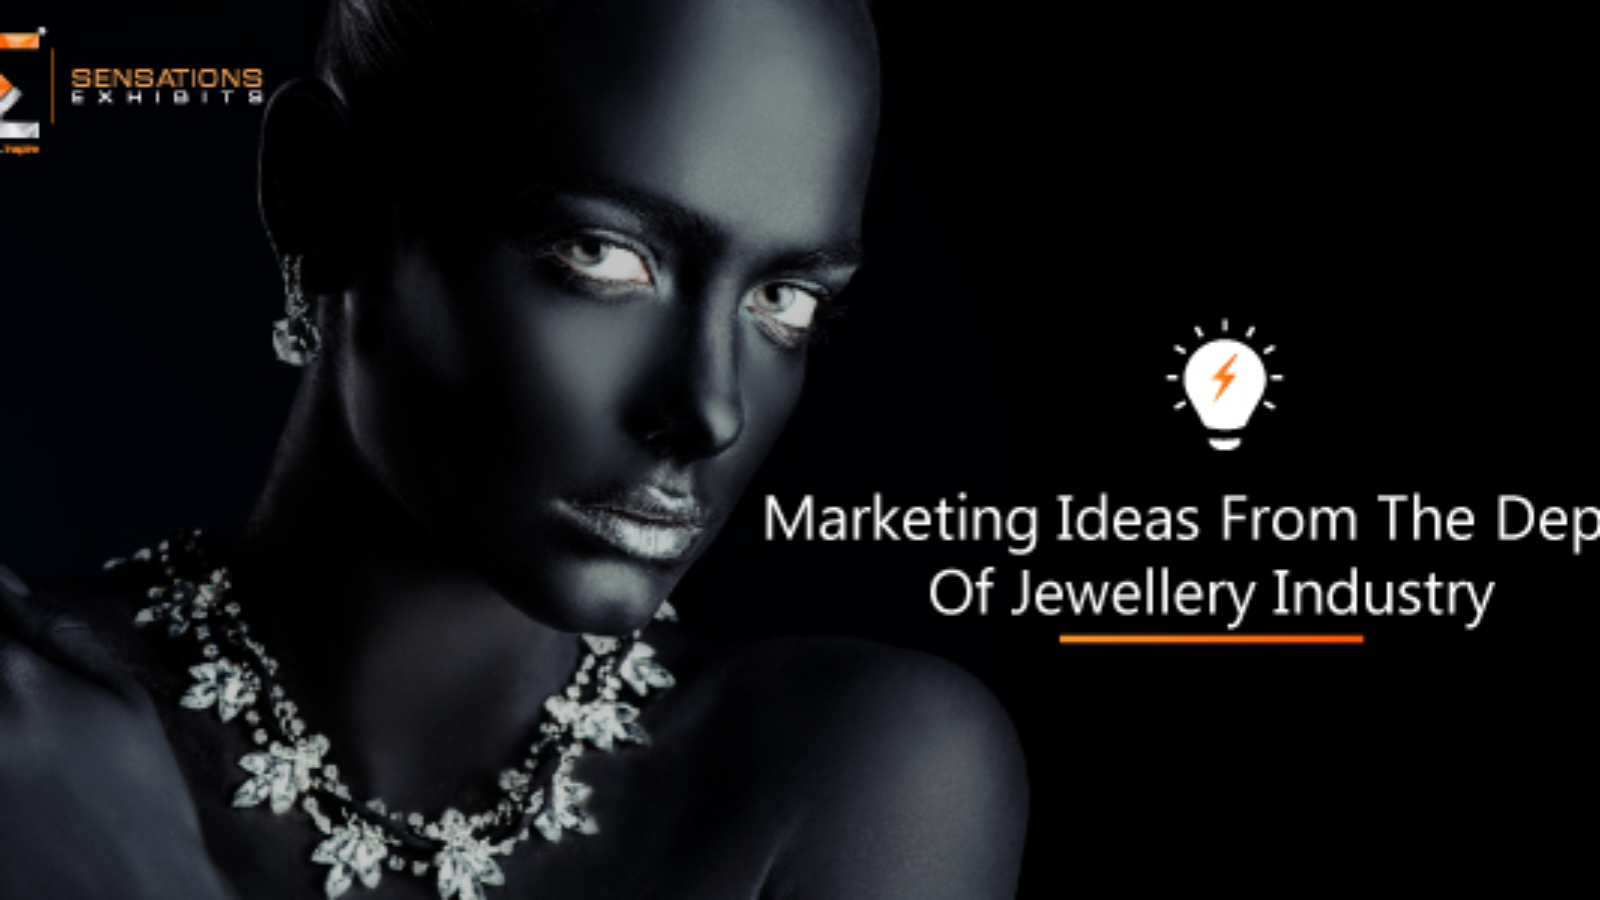 Marketing-Ideas-From-The-Depth-Of-Jewellery-Industry